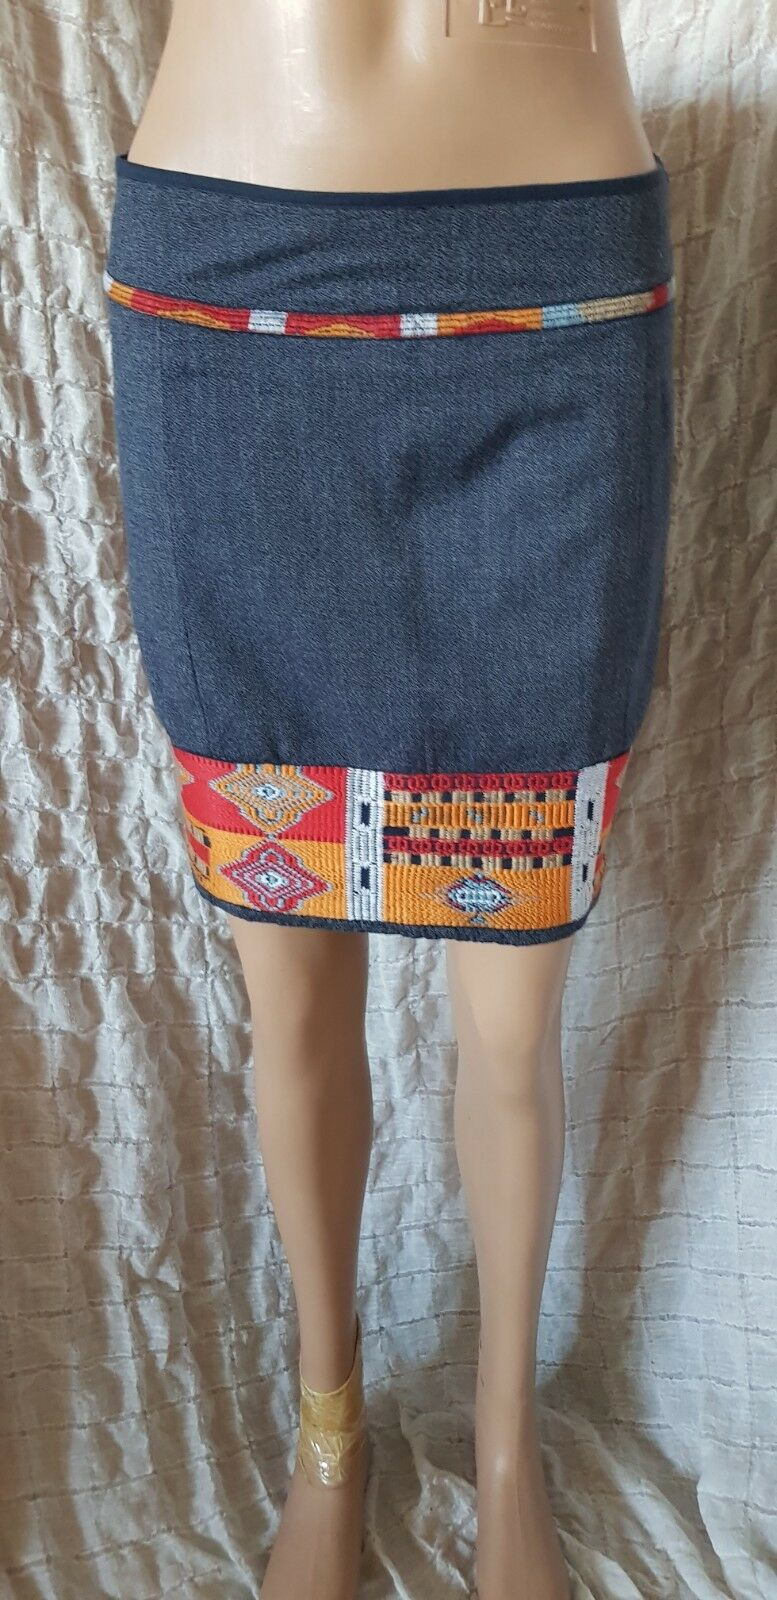 Peruvian Connection bluee embroidered cotton mini skirt size 8 UK